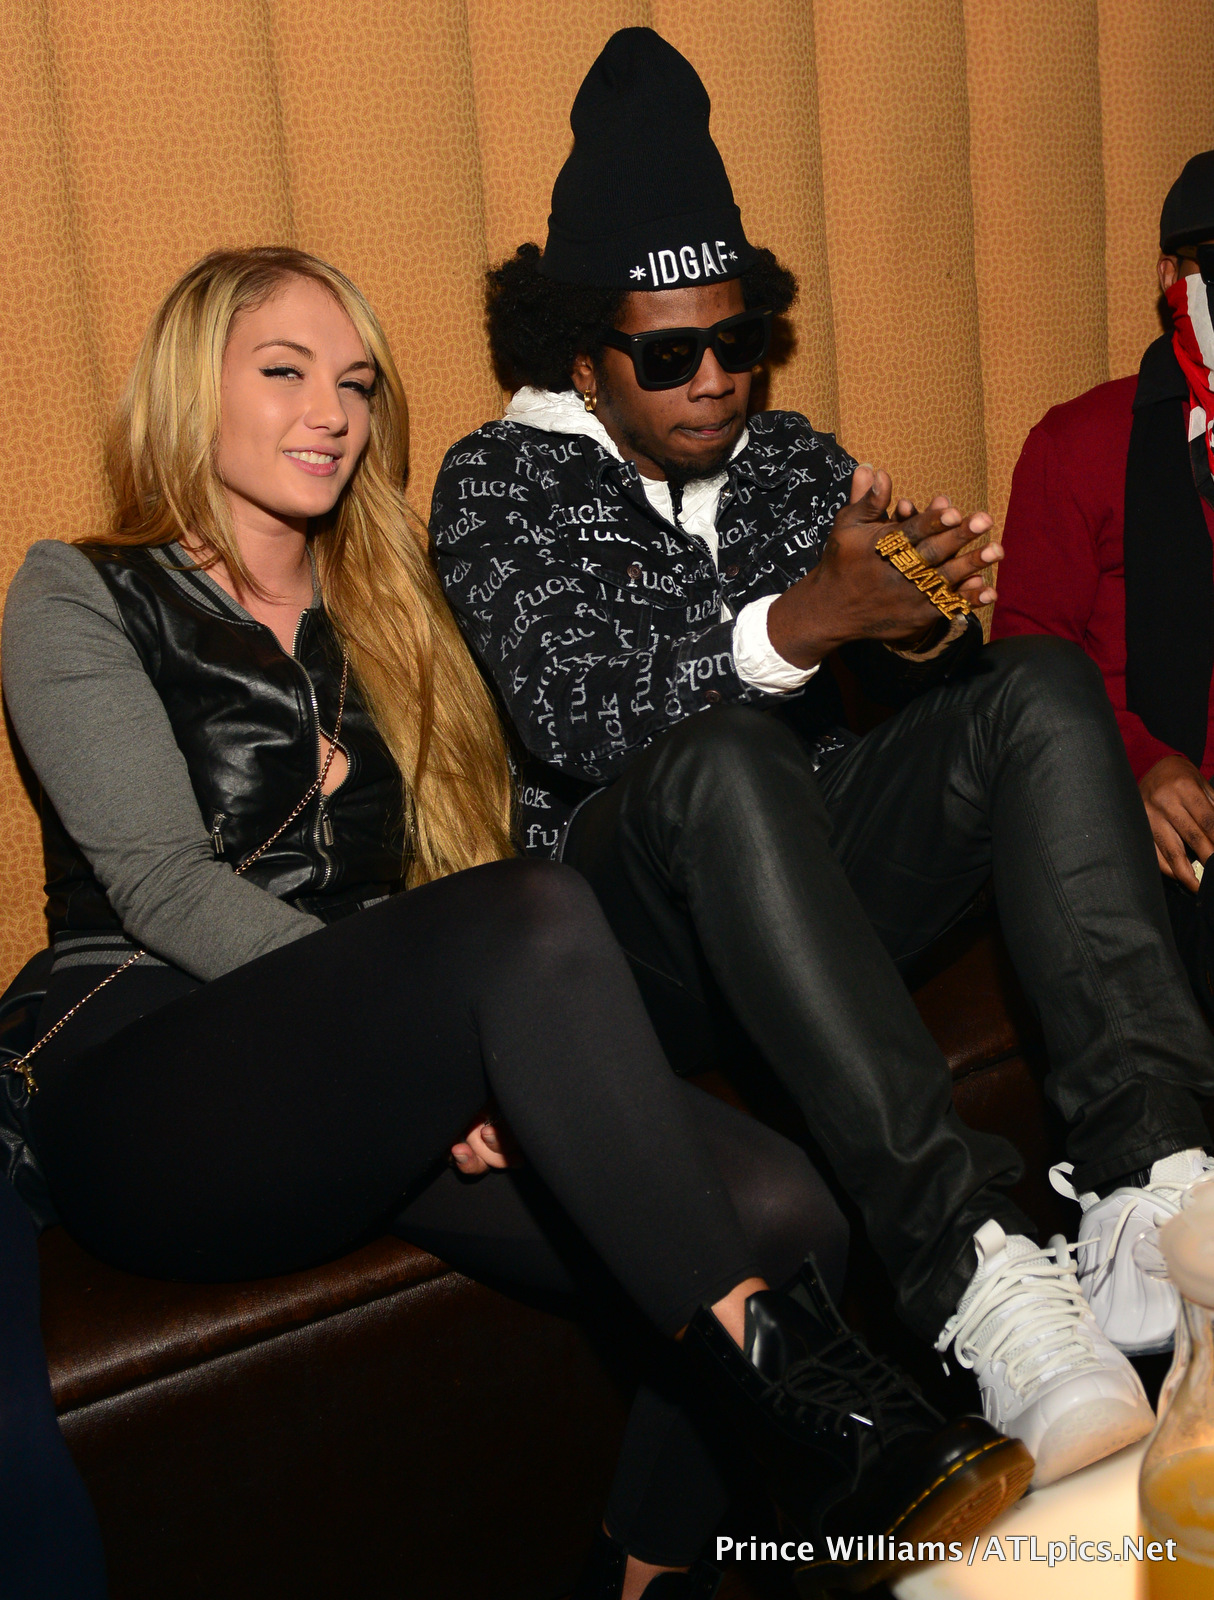 f-trinidad james-atl clubbin-with white girl-the jasmine brand